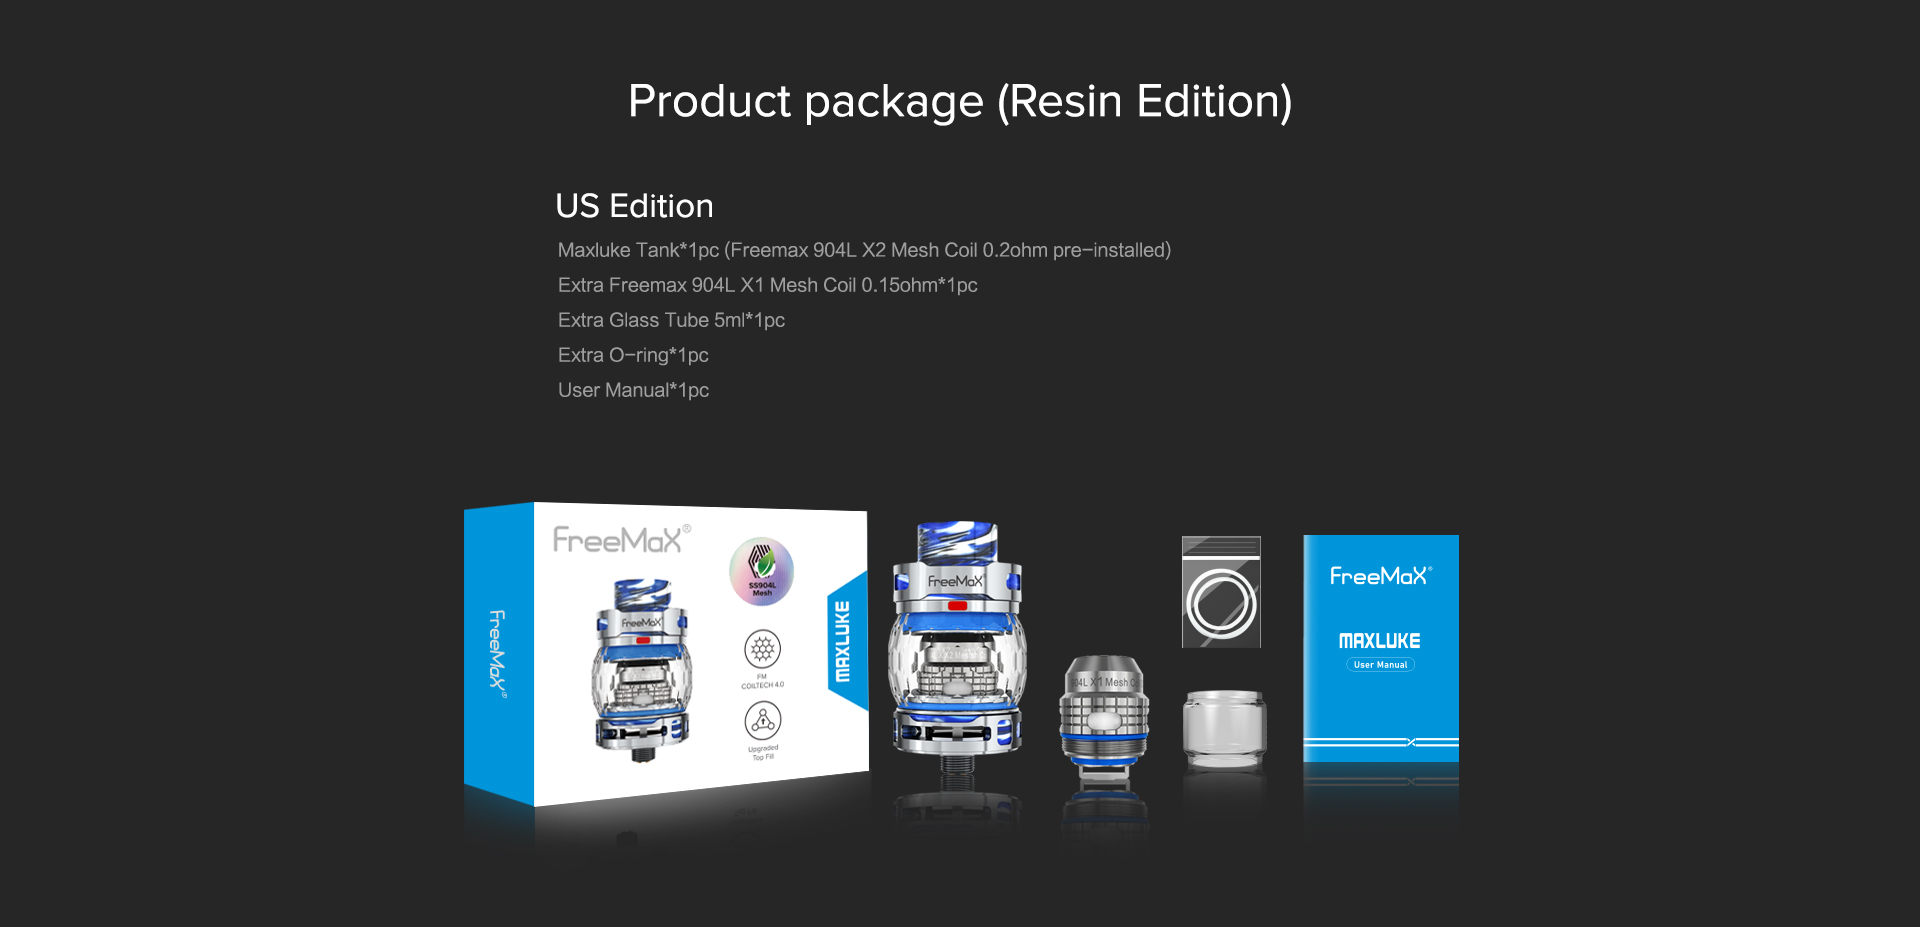 Fireluke 3 - Product package (Resin Edition) US Edition